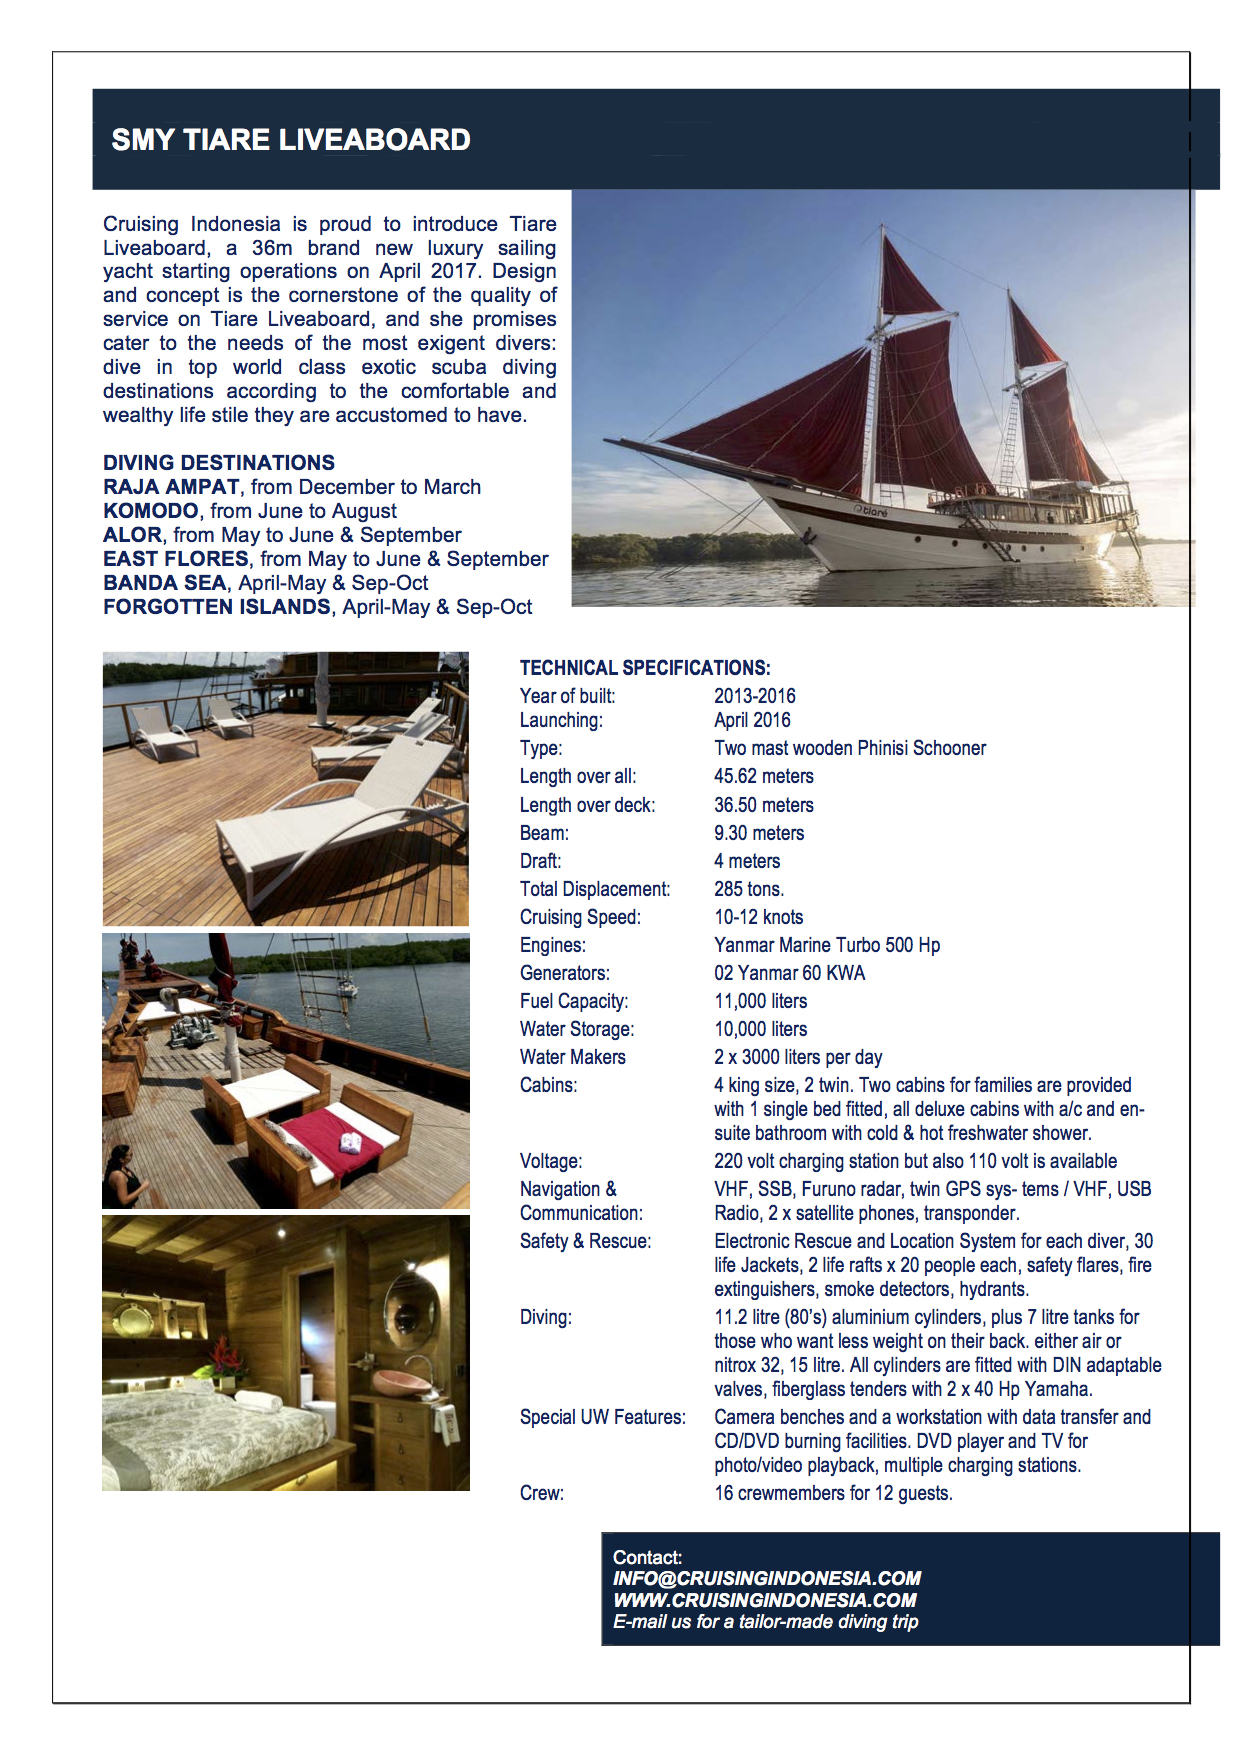 tiare_liveaboard_technical_data